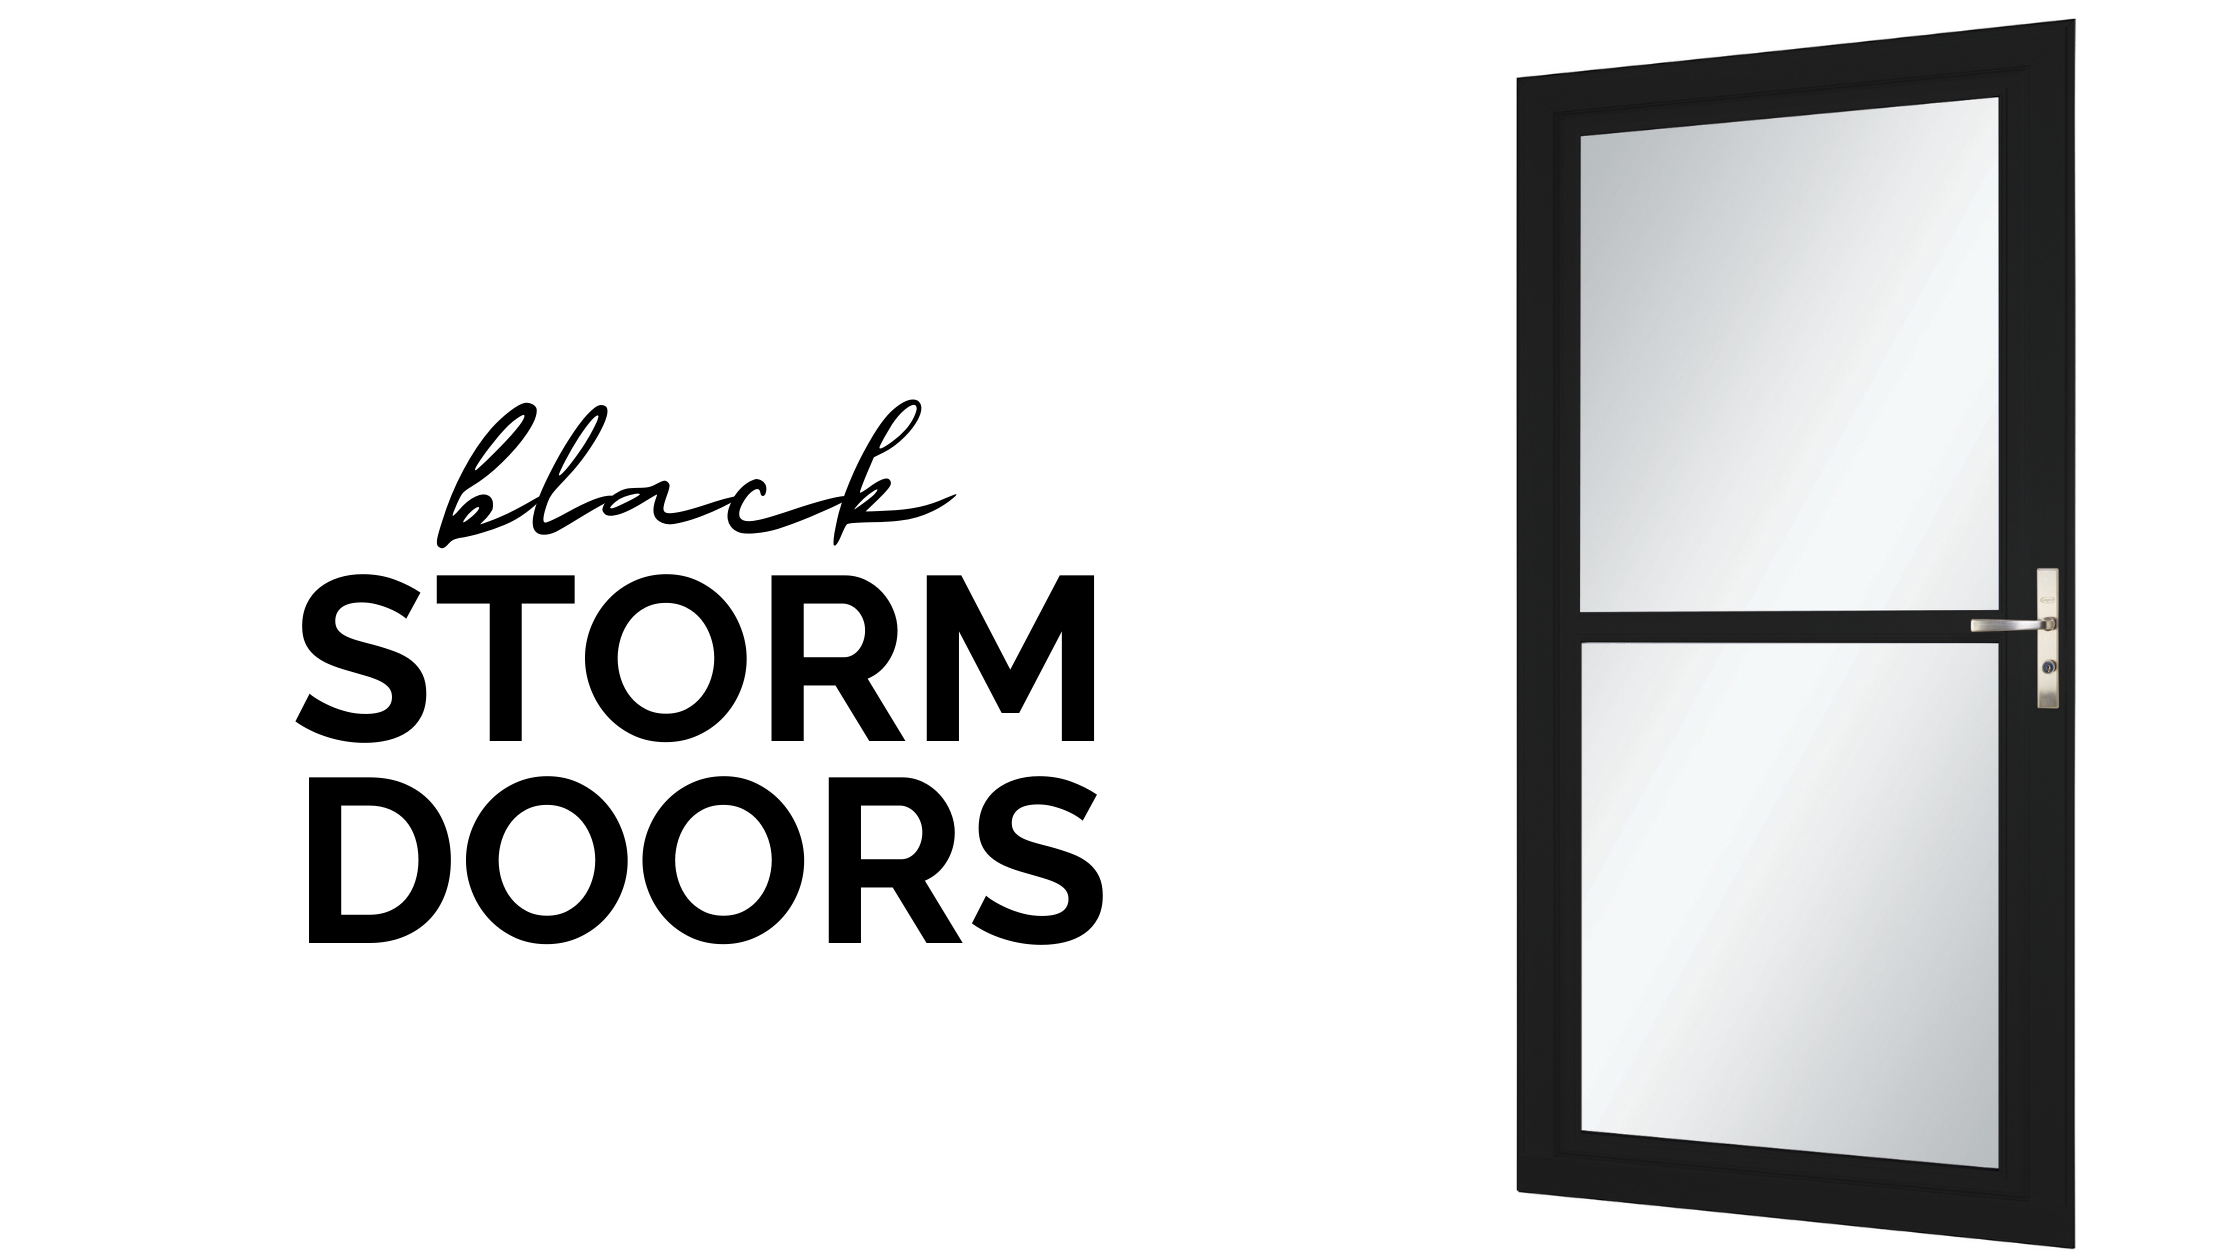 Yes, We Manufacture Black Storm Doors!